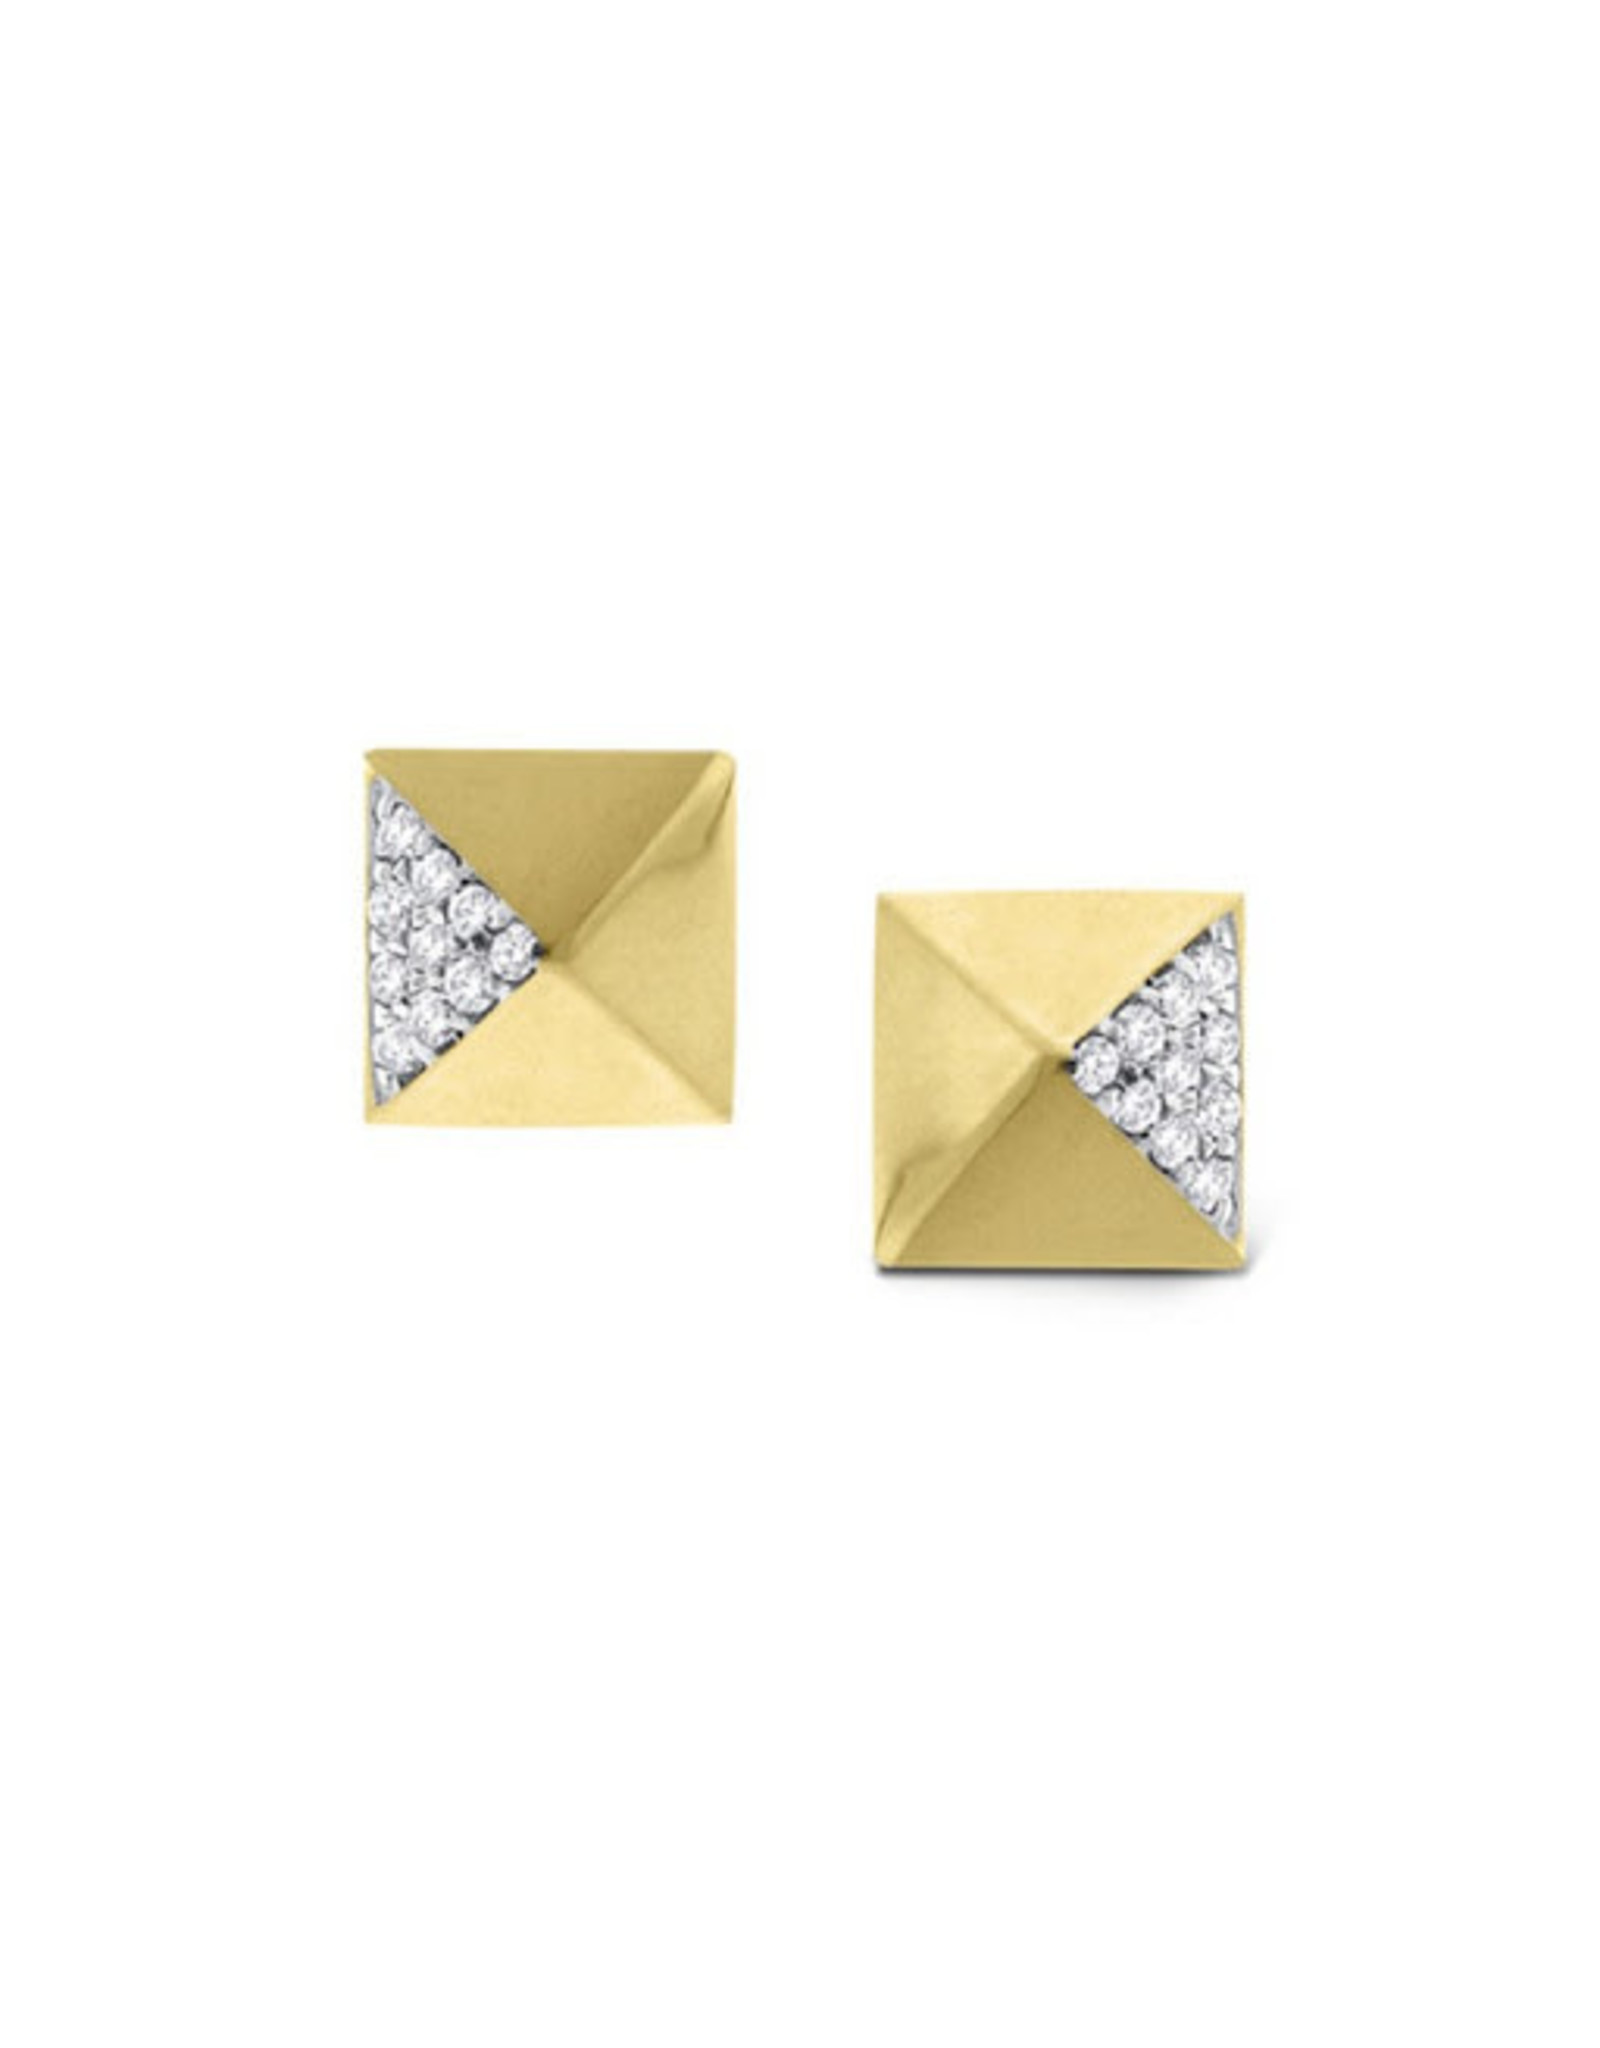 14K Yellow Gold Diamond Pyramid Stud Earrings, D: 0.10ct